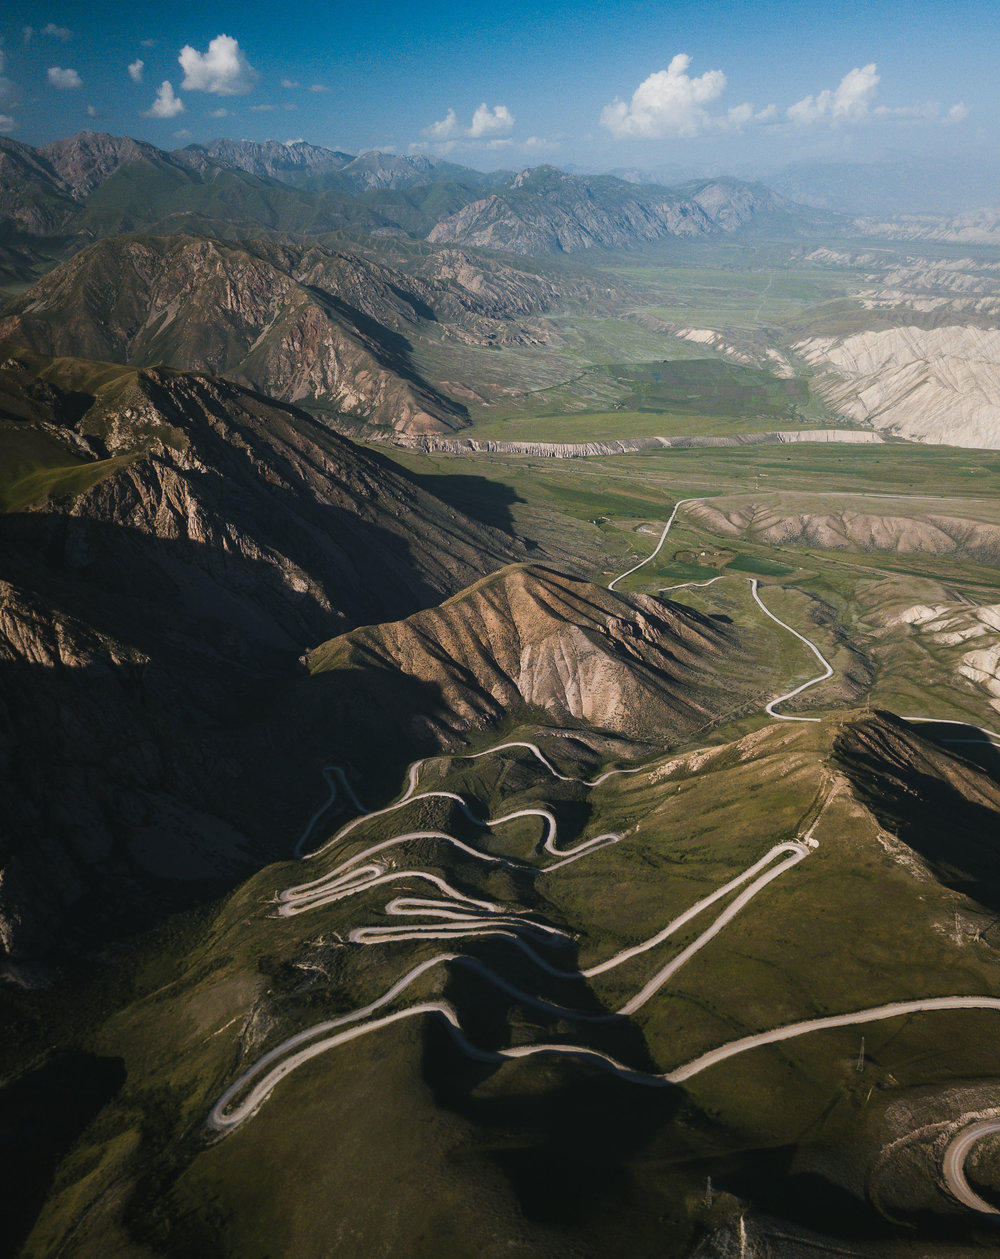 The Road to Kazerman - The incredible road which snakes its way across these stunning mountain ranges. Photo: Matt Horspool.